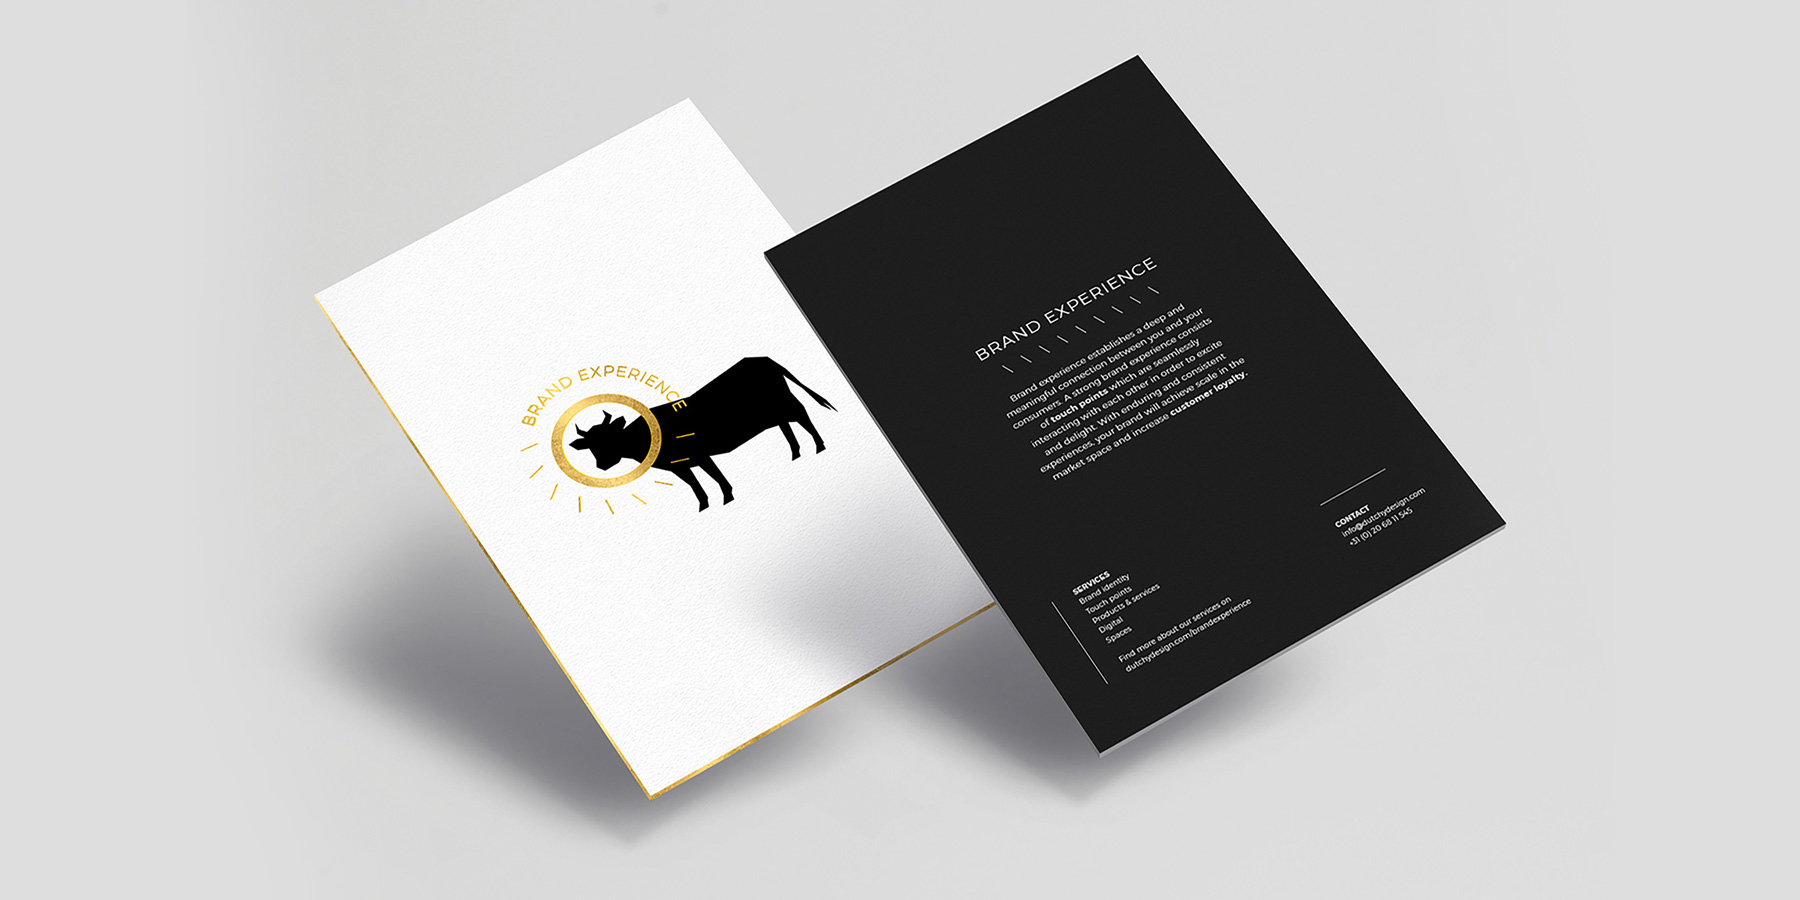 Dutchy Design / Dutchy Design / Branding & Design Portfolio